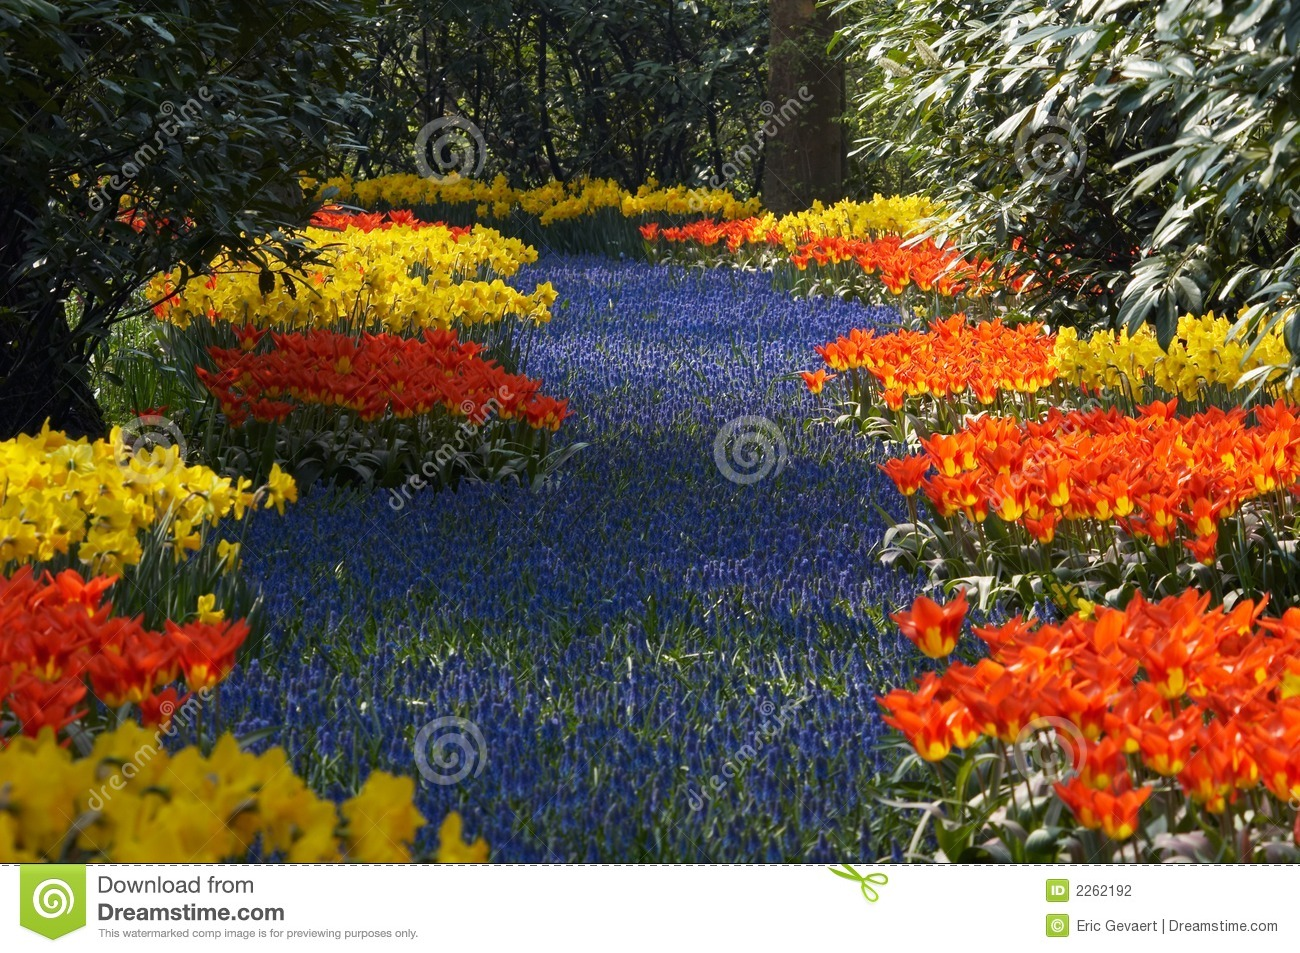 Jardin de fleur au printemps photo stock image 2262192 for Fleurs de jardin photos